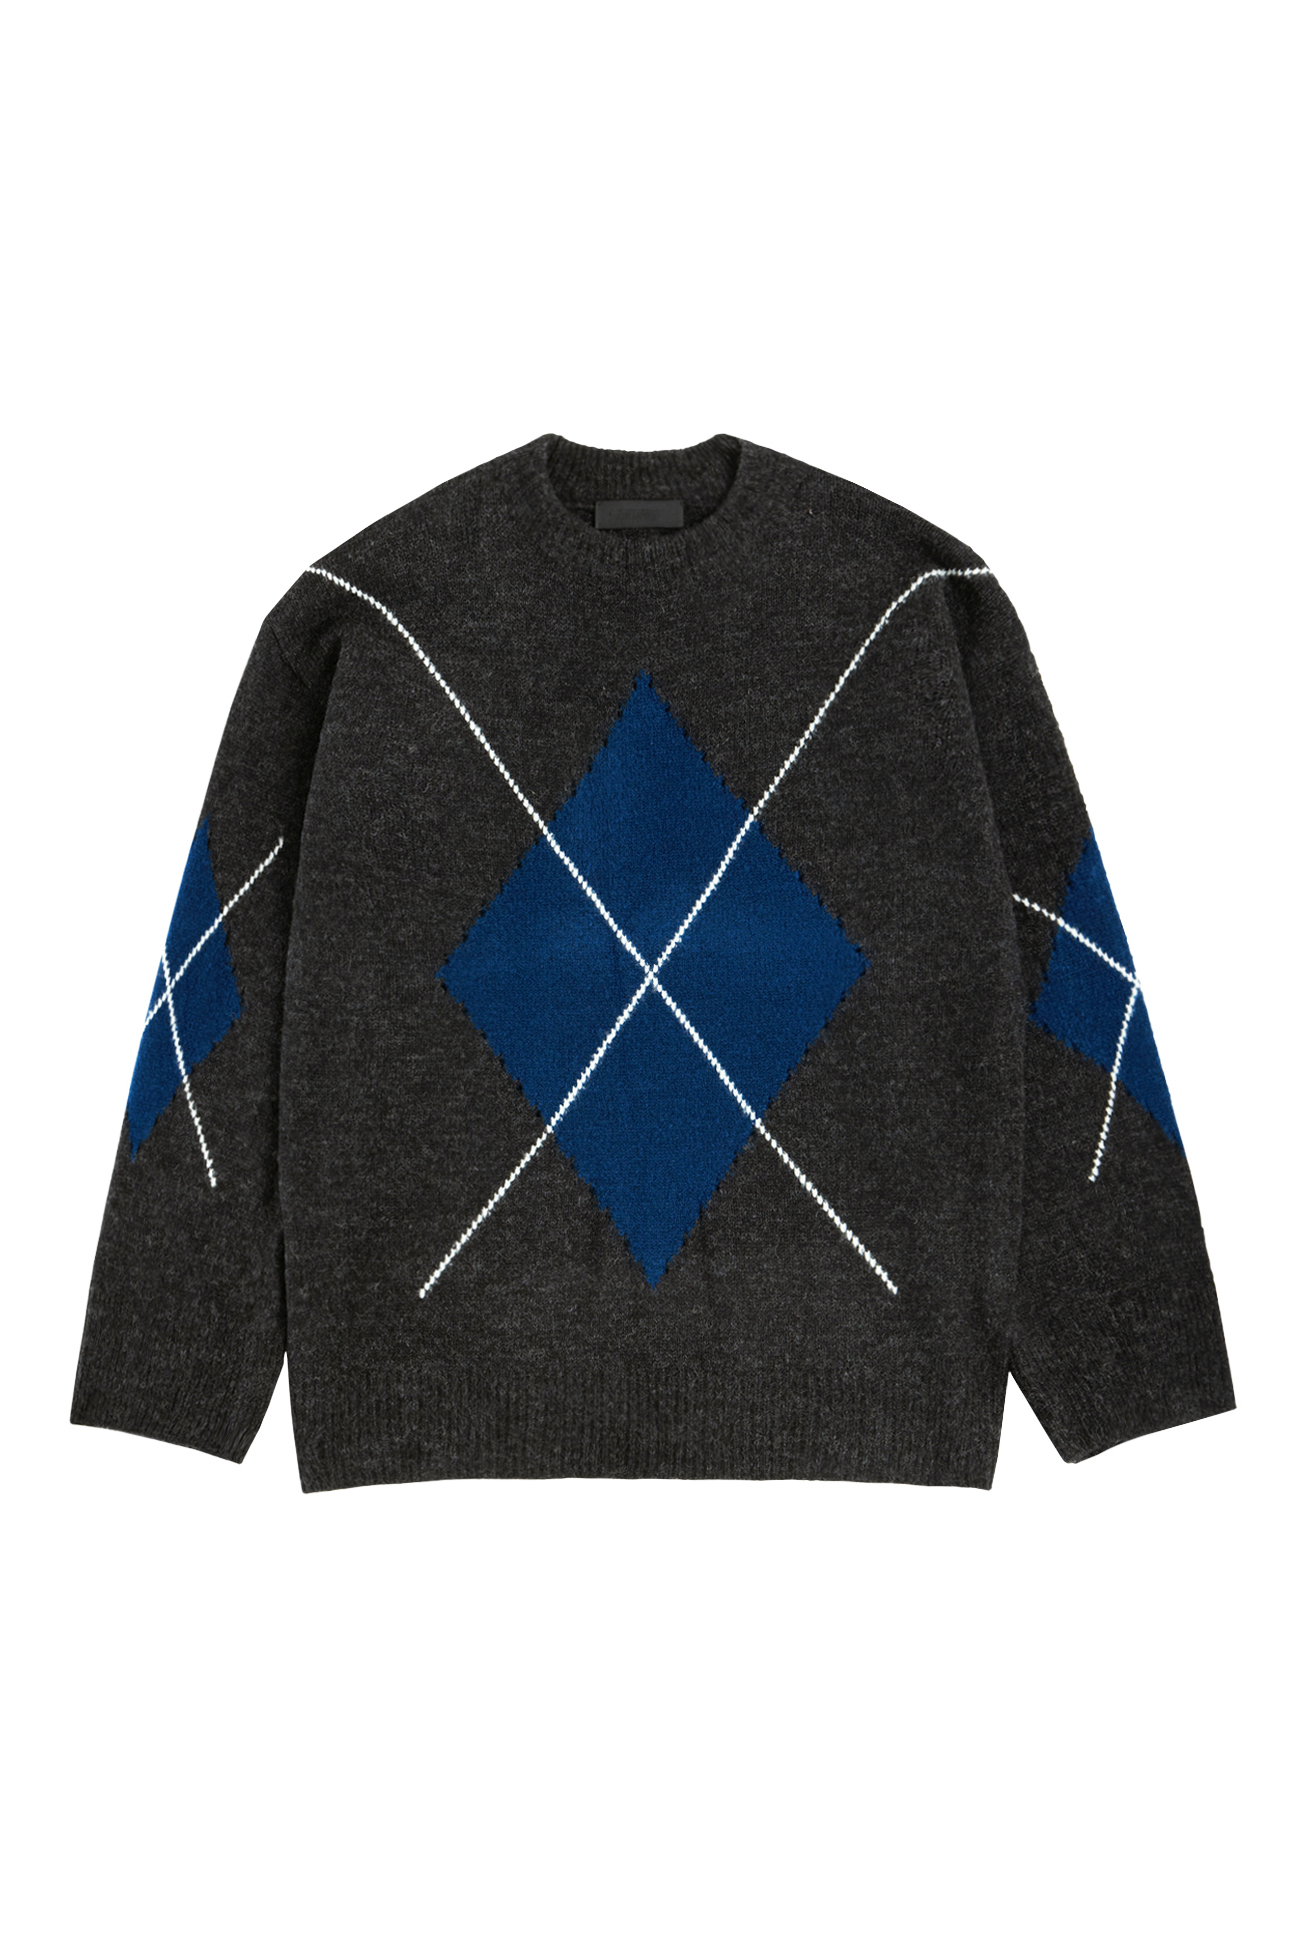 Argyle sweater charcoal